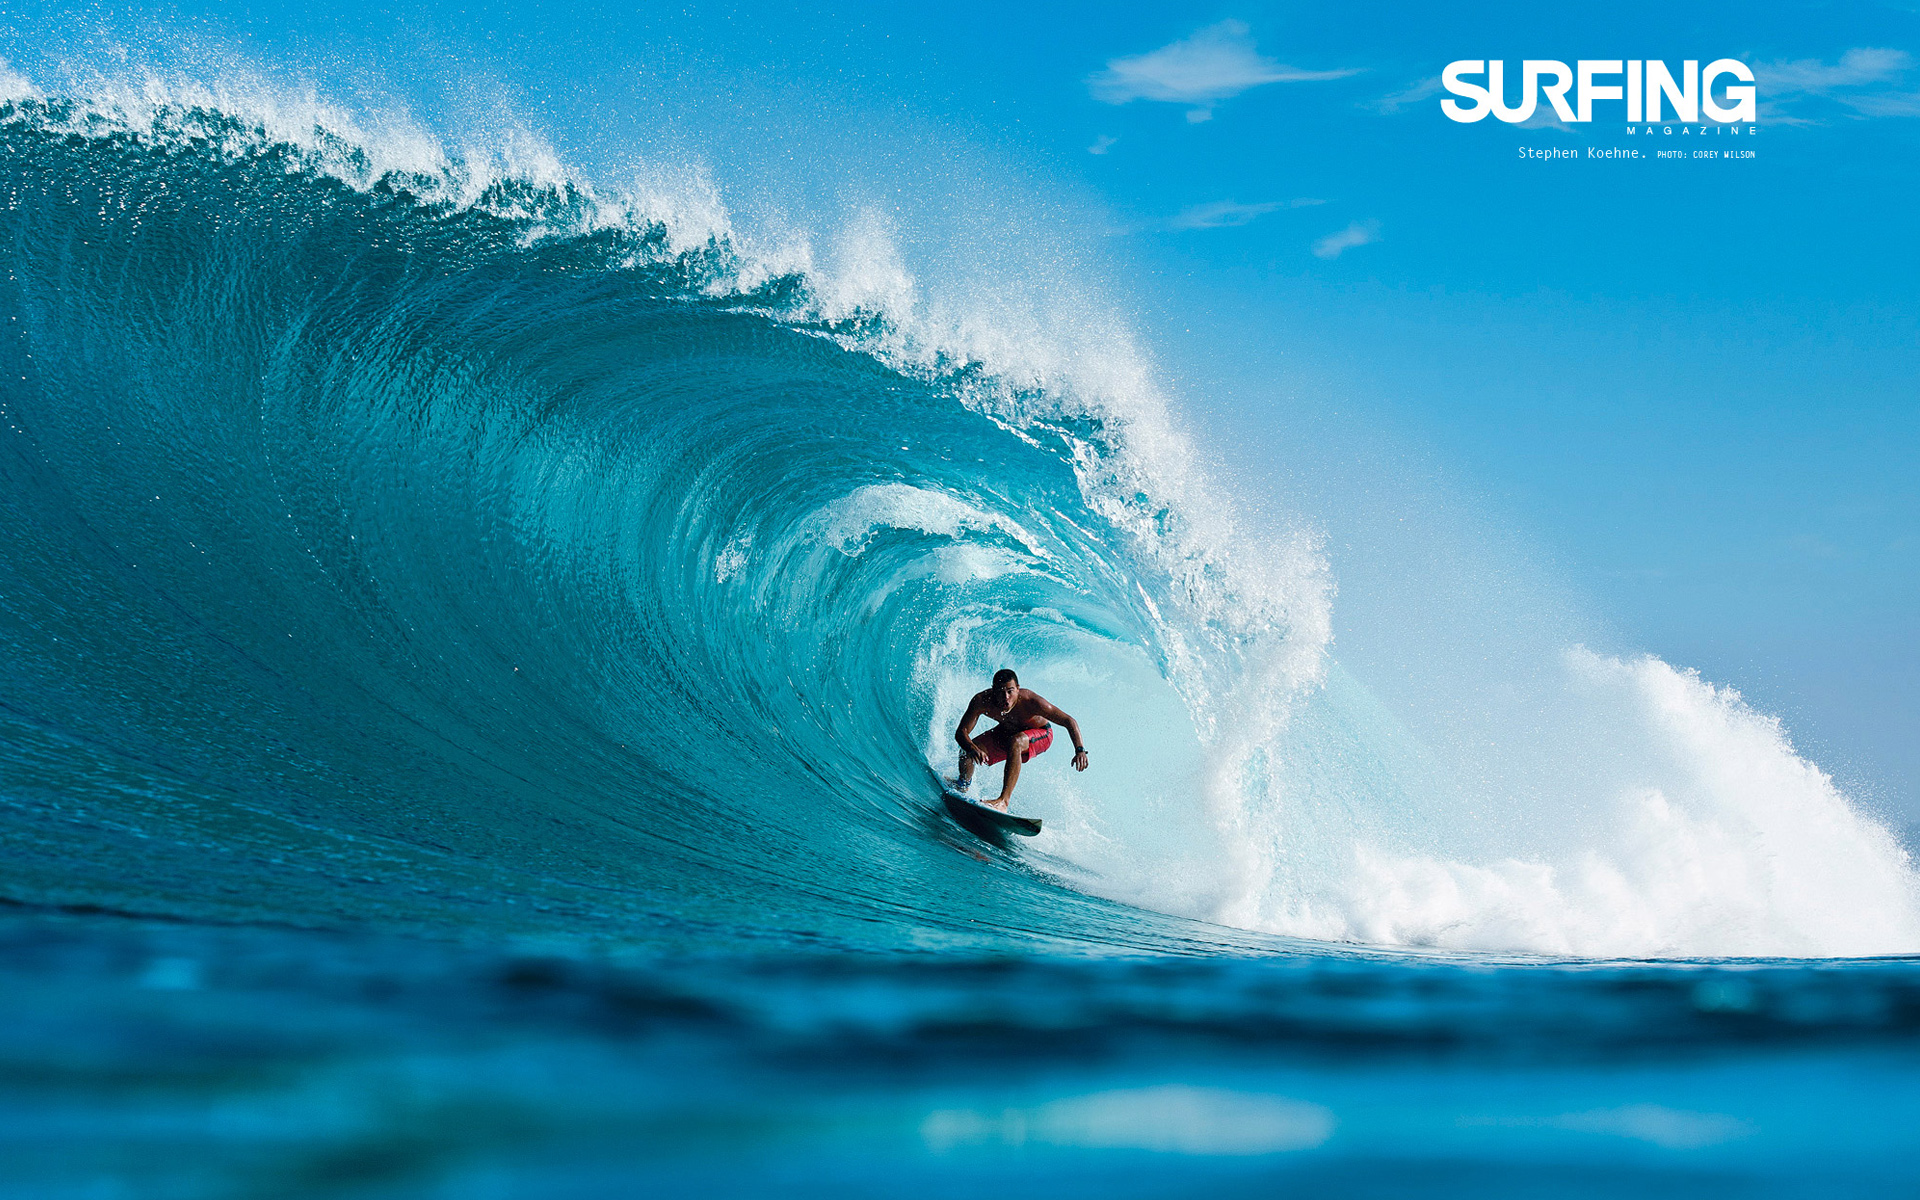 34 Surfing Hd Wallpapers   ImgHD Browse and Download Images and 1920x1200